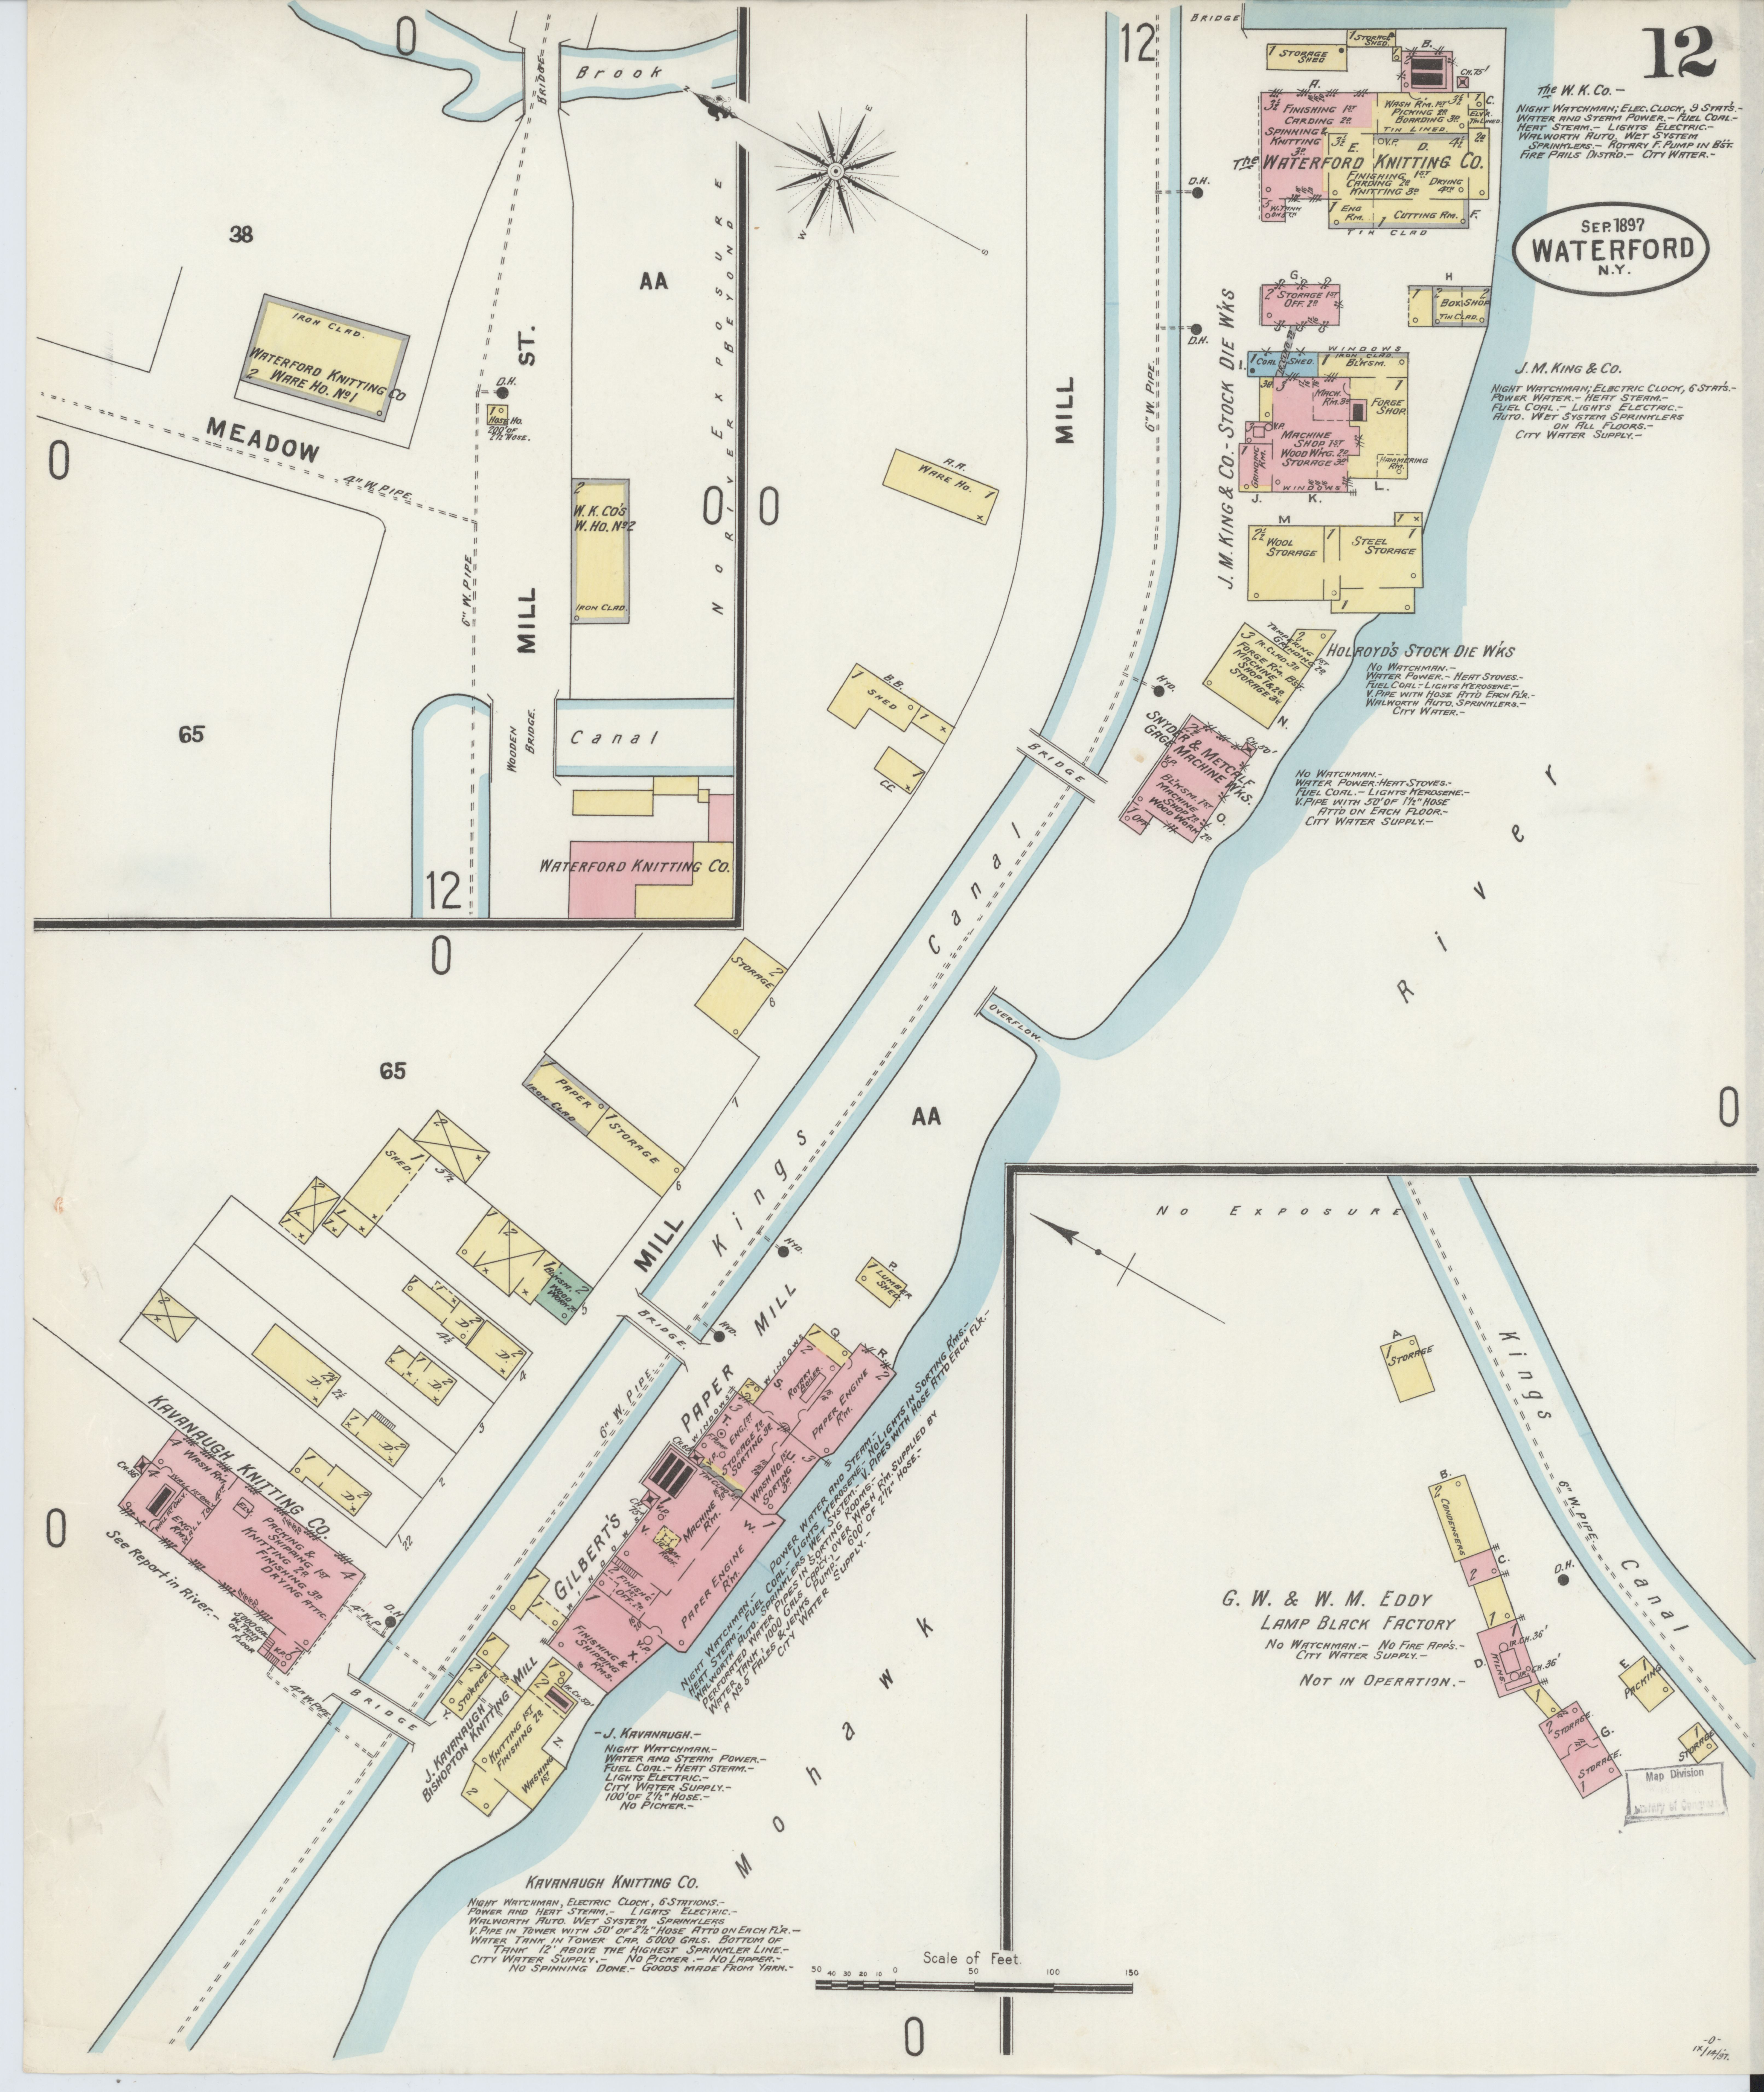 File Sanborn Fire Insurance Map from Waterford Saratoga County New